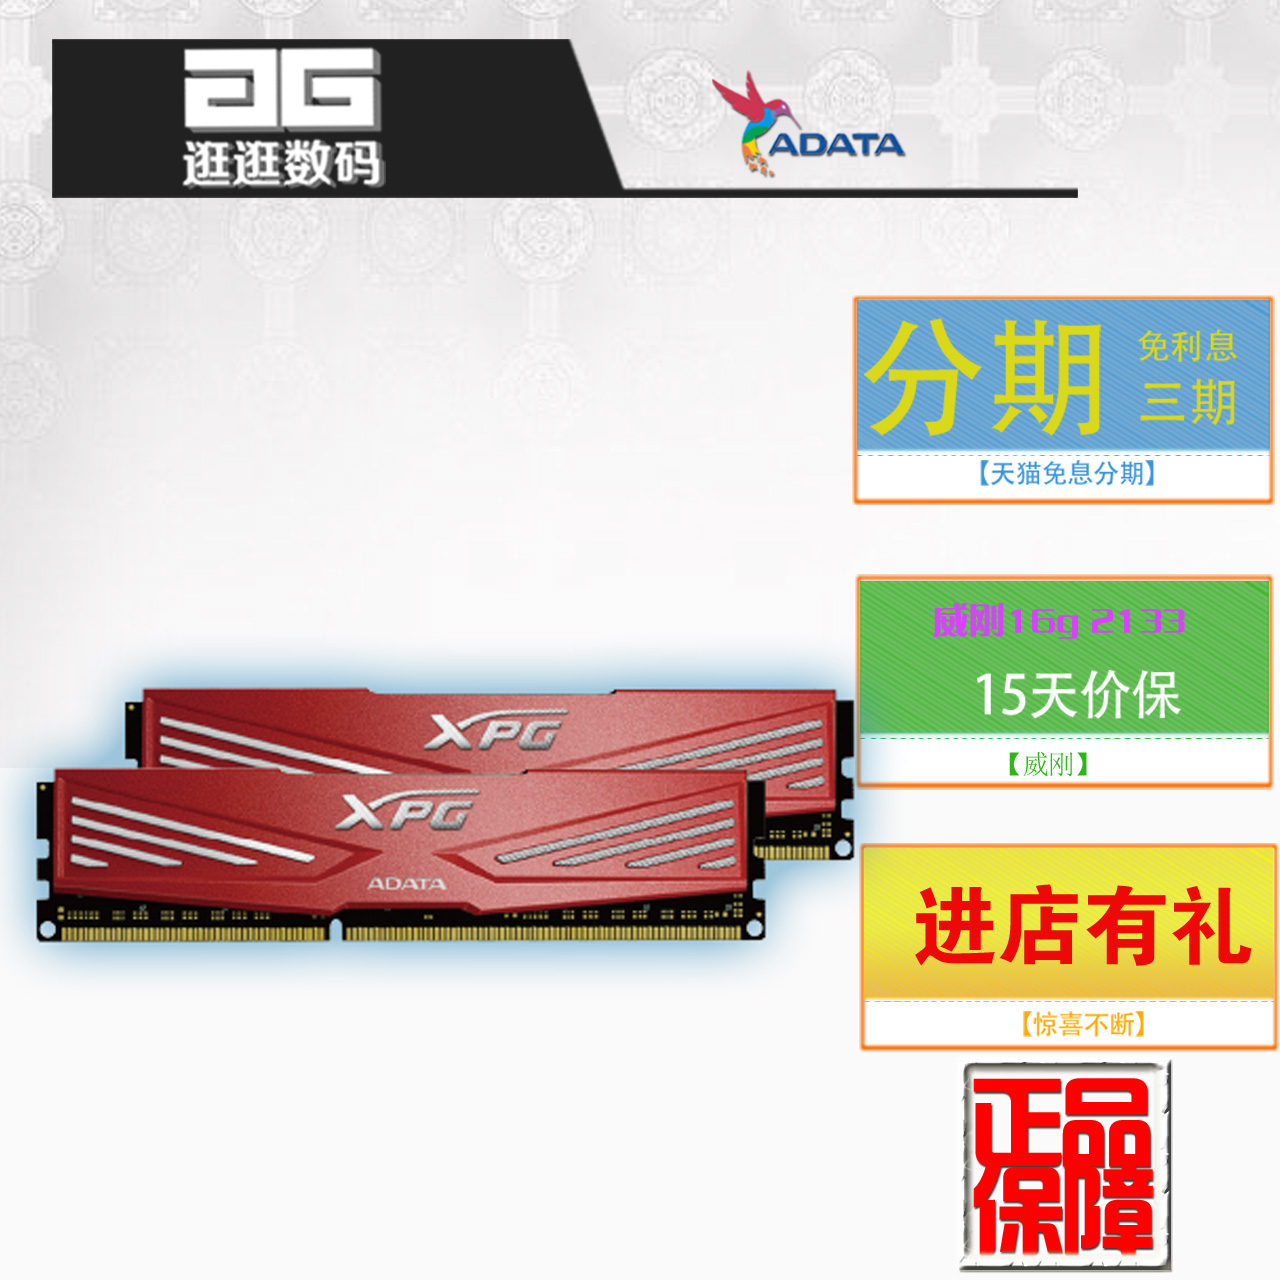 Adata/adata red 16g 2133 ddr3 desktop memory game veyron 8g * 2 sets